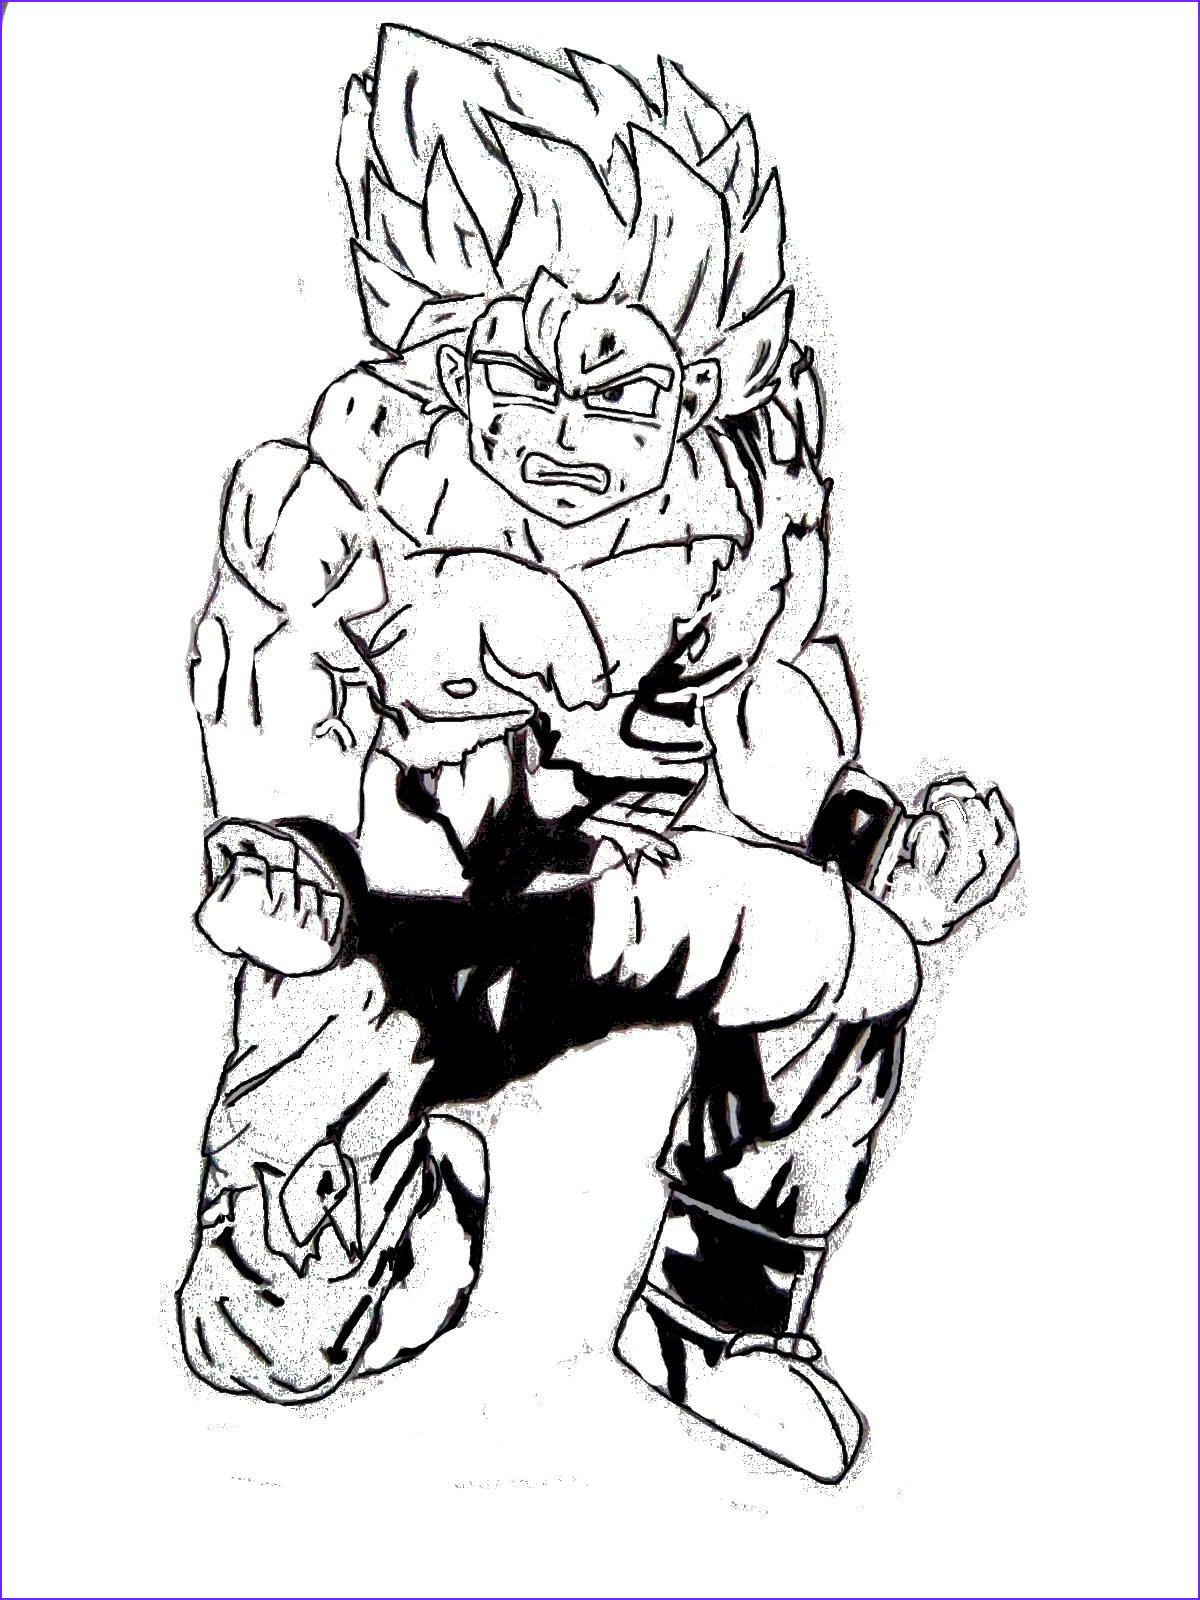 Coloring Dragonball Z New Photos Free Printable Dragon Ball Z Coloring Pages for Kids